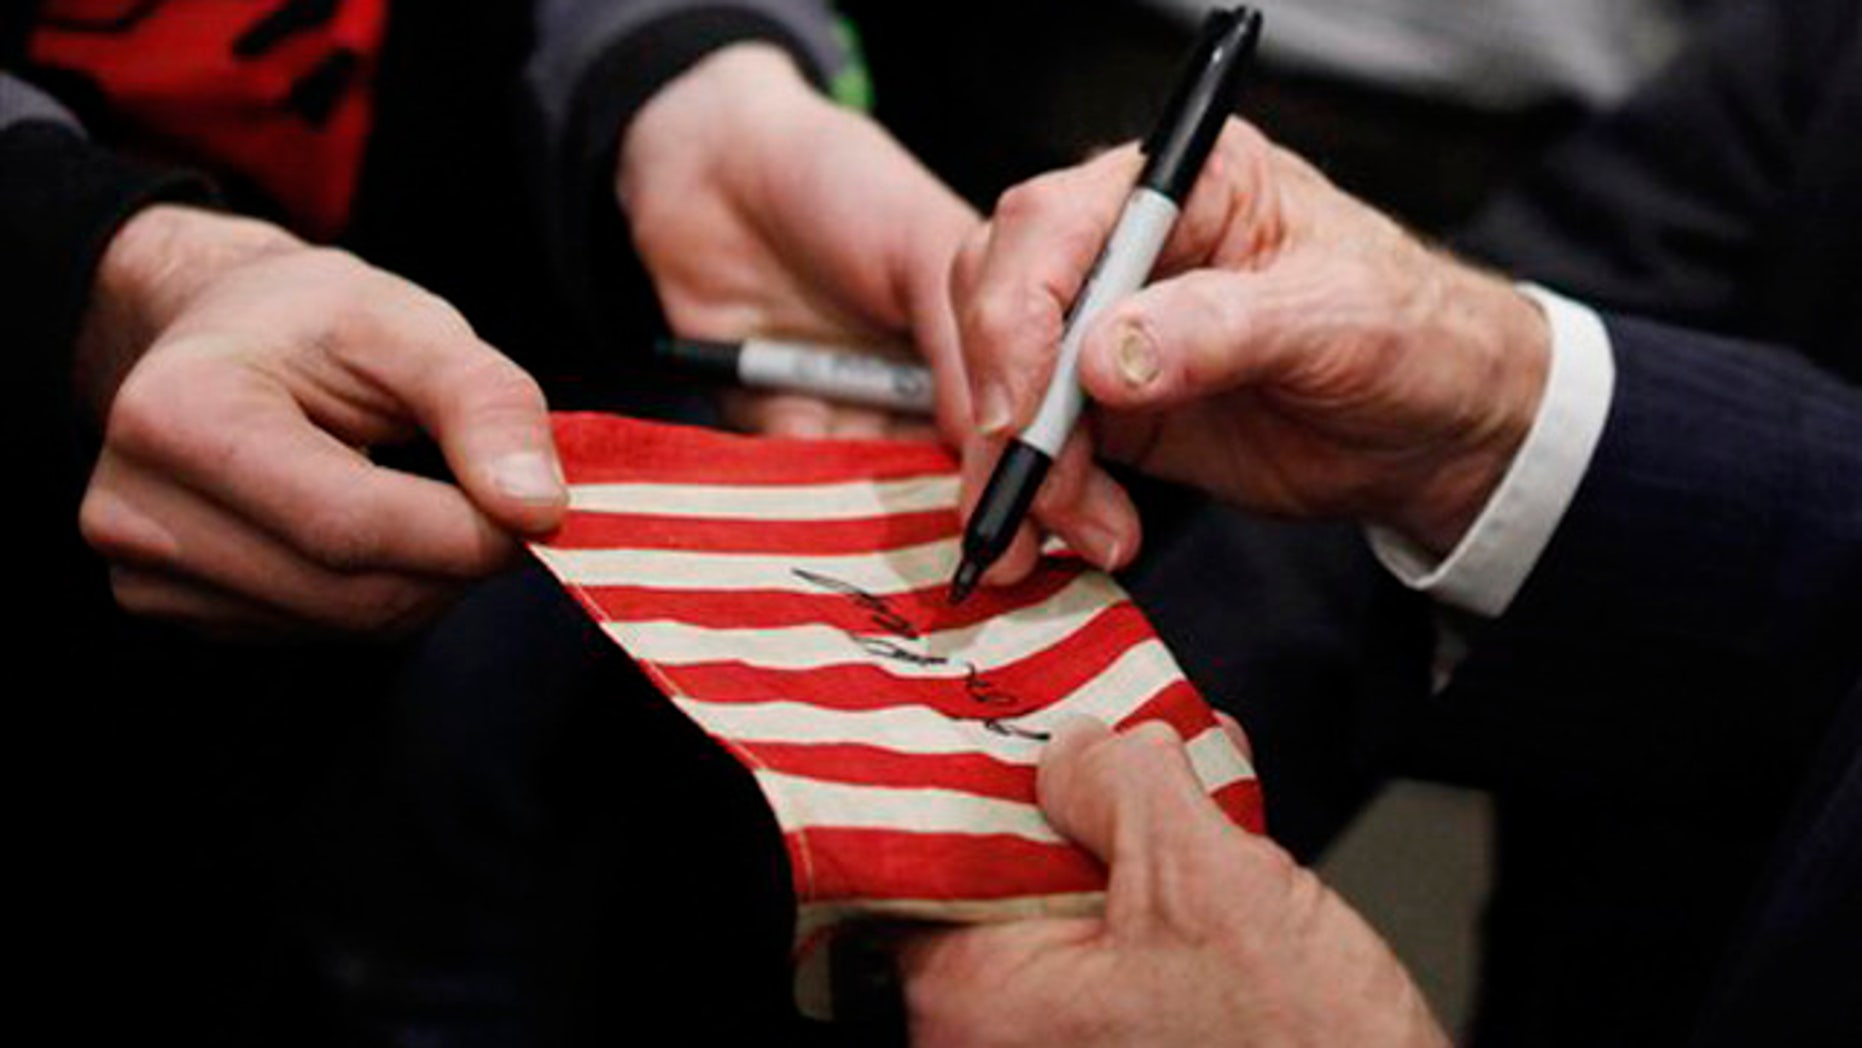 Dec. 29, 2011: Ron Paul signs a flag for a supporter as he campaigns in Council Bluffs, Iowa.